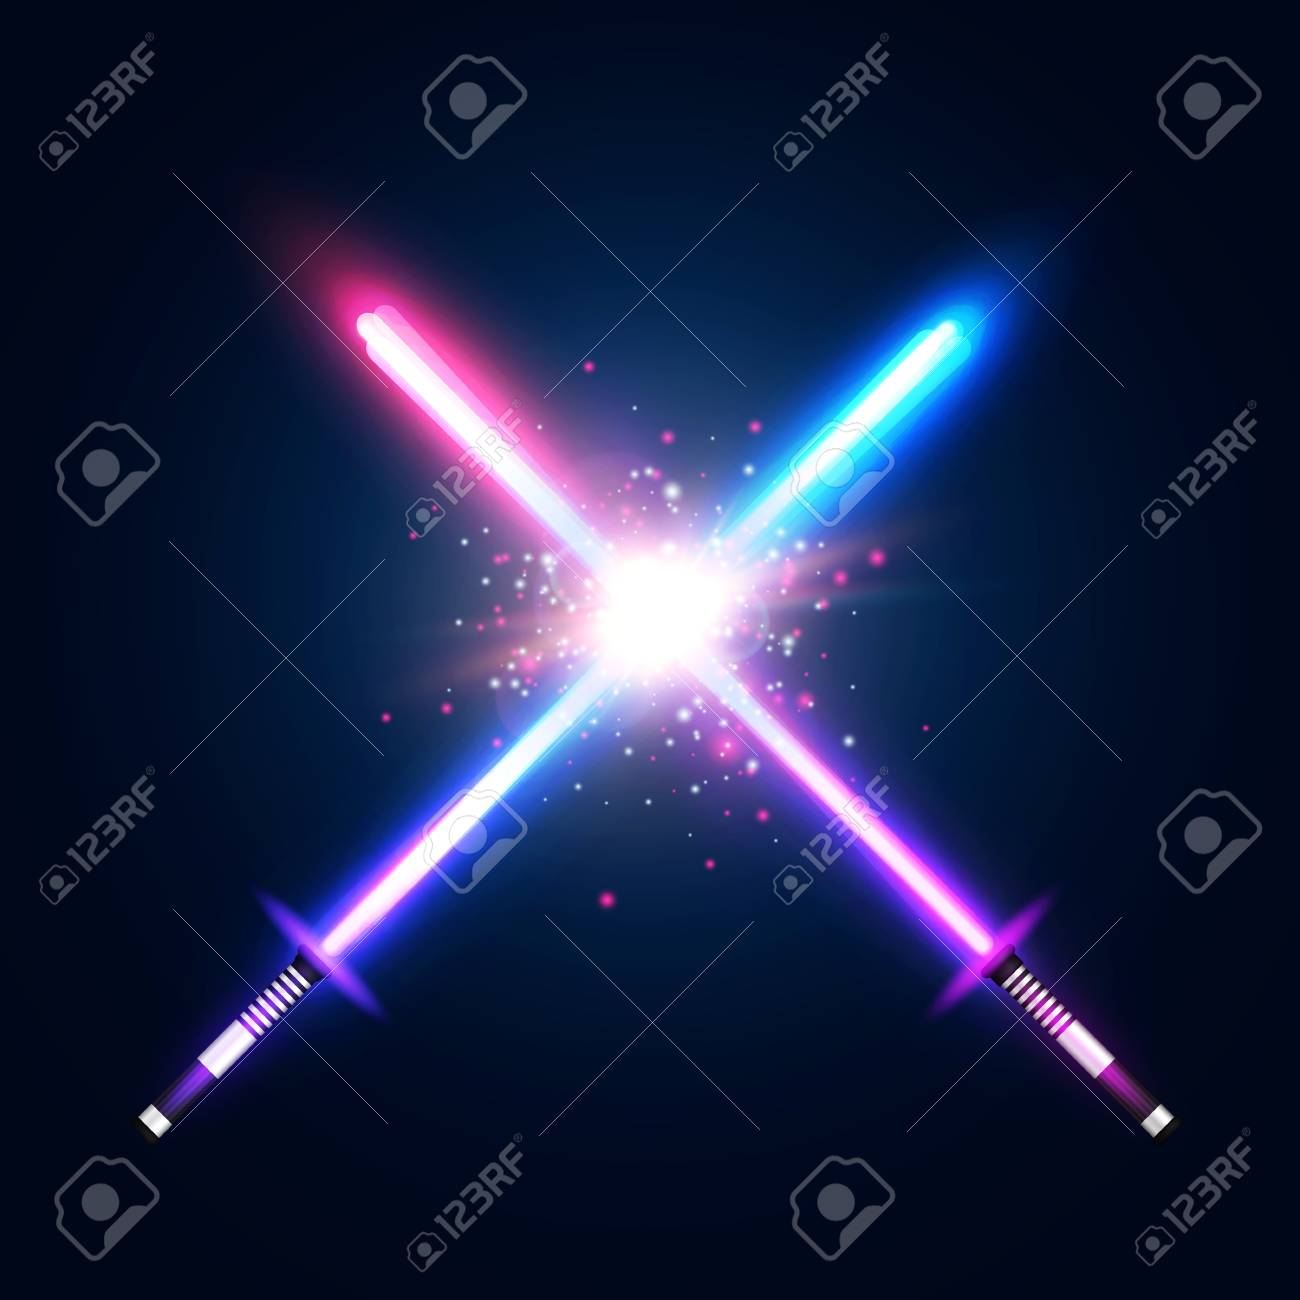 Two crossed light neon swords fight. Blue and violet crossing laser sabers war. Club icon or emblem. Glowing rays in space. Battle elements with star, flash and particles. - 92032337